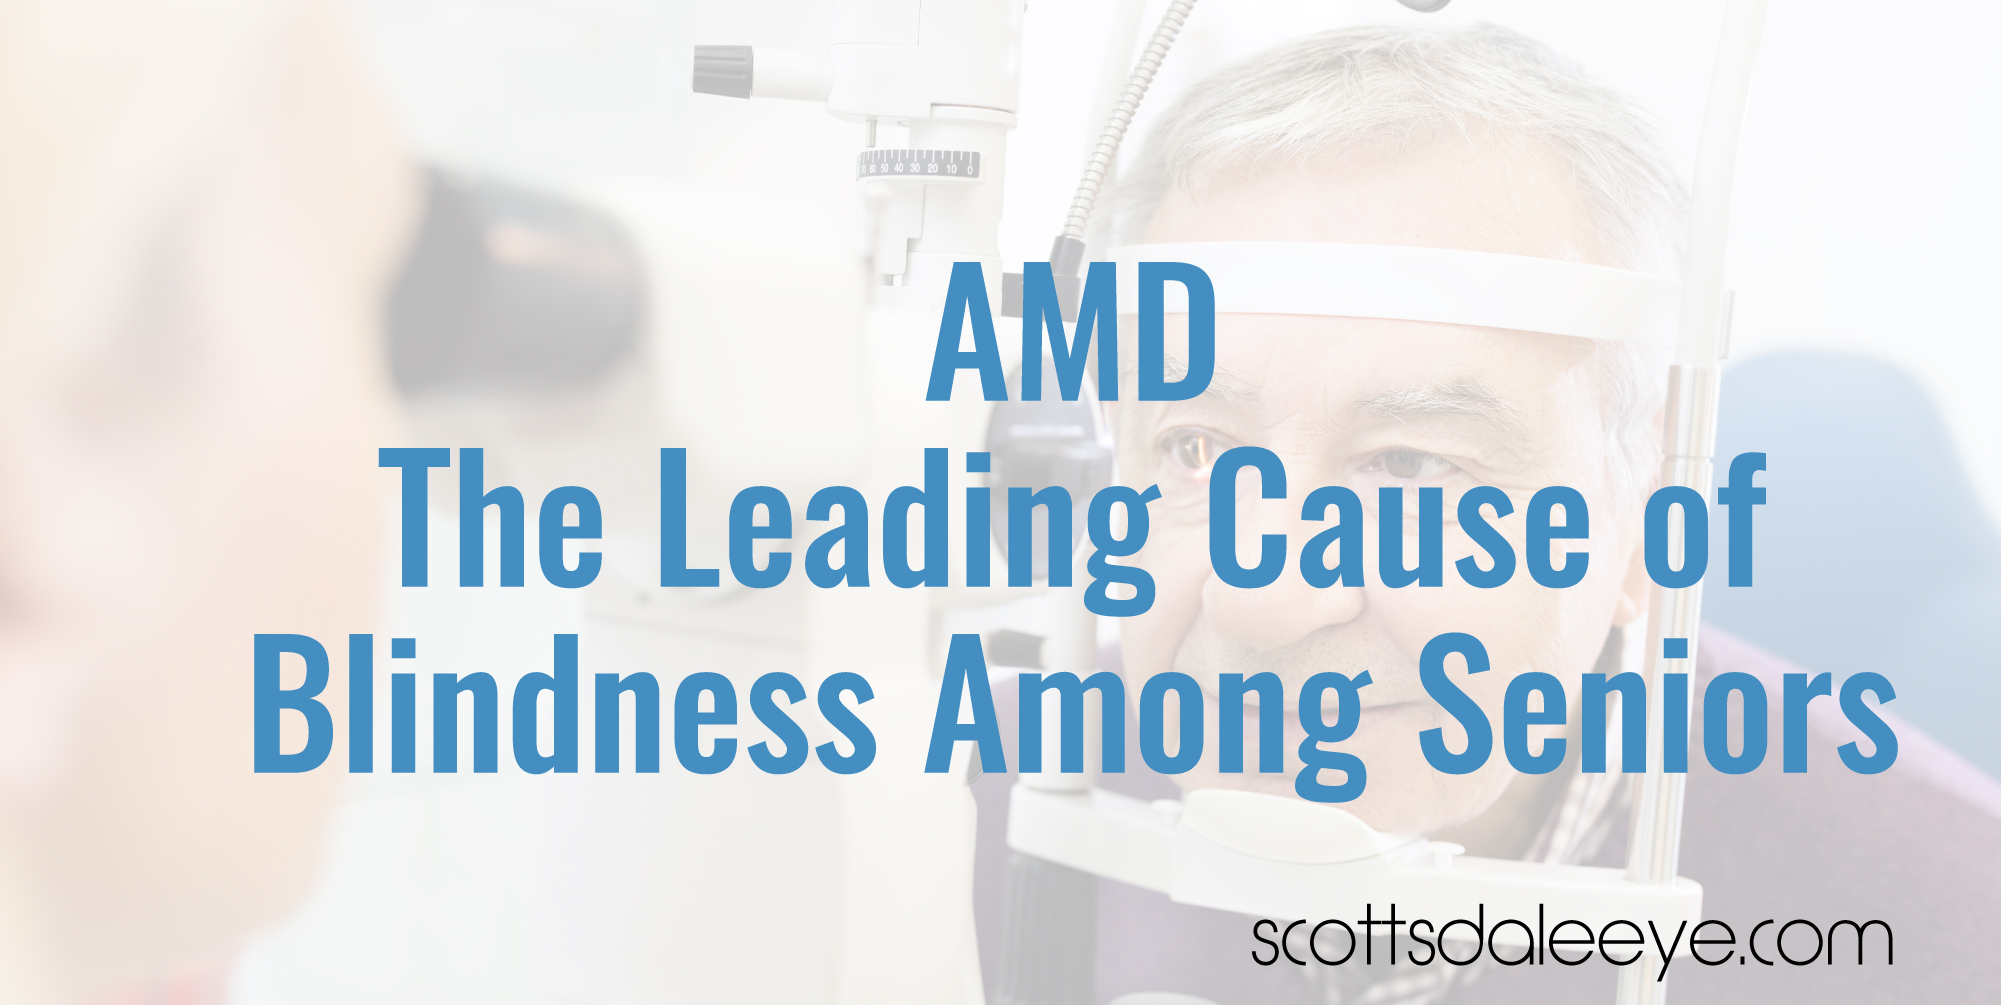 Most Americans Unaware of One of the Leading Causes of Blindness